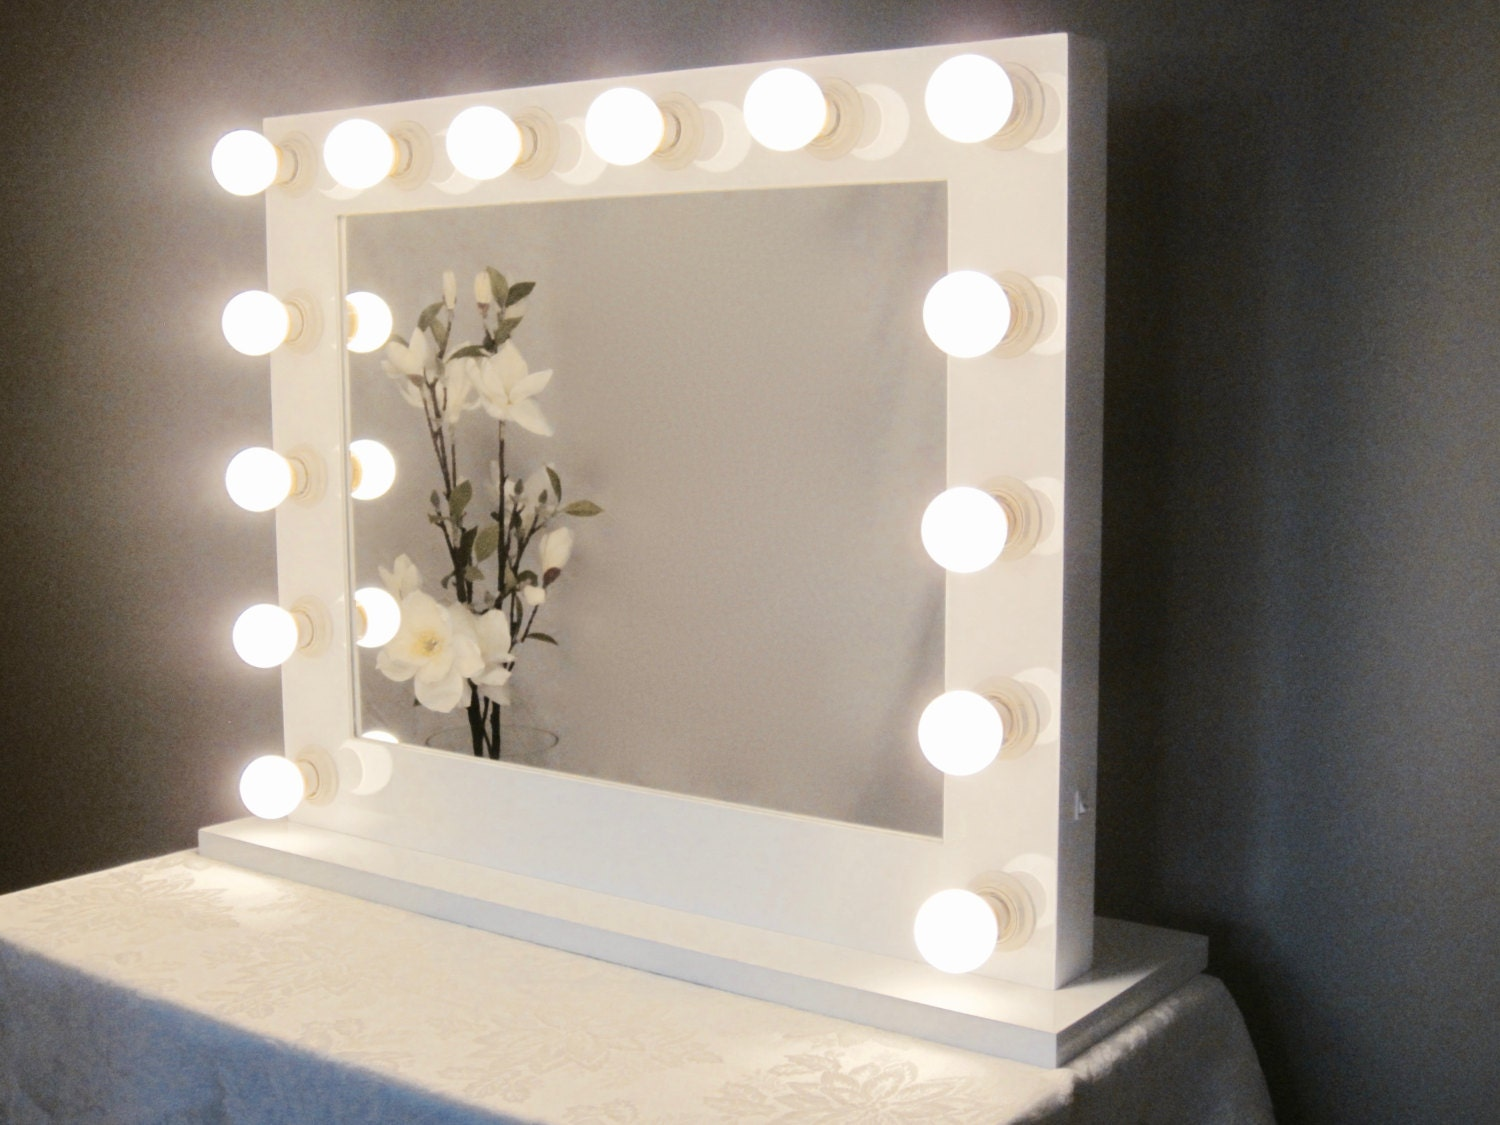 Vanity Mirror Dresser Lights : Grand Hollywood Lighted Vanity Mirror w/ LED Bulbs by ImpactVanity